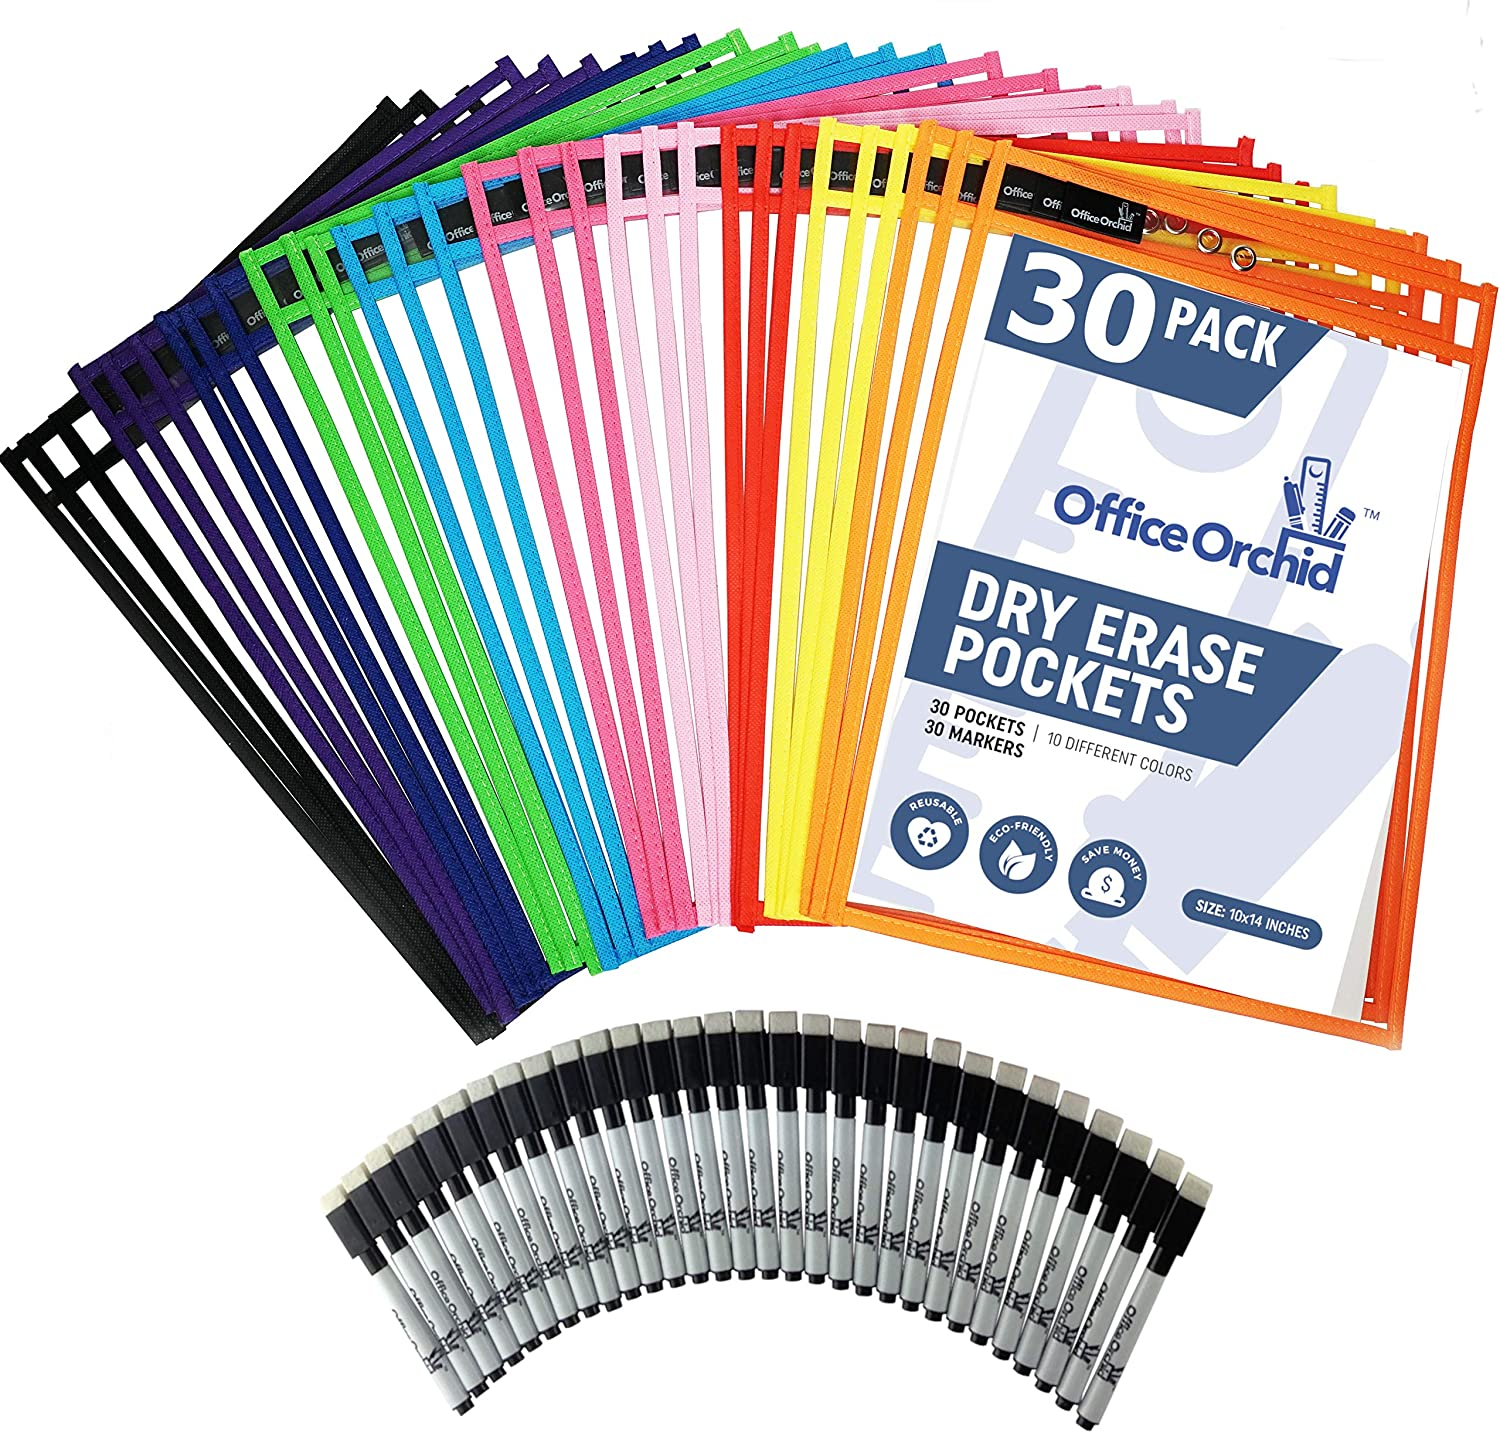 Dry Erase Pockets Reusable Sleeves by Office Orchid - Heavy Duty Oversized 10